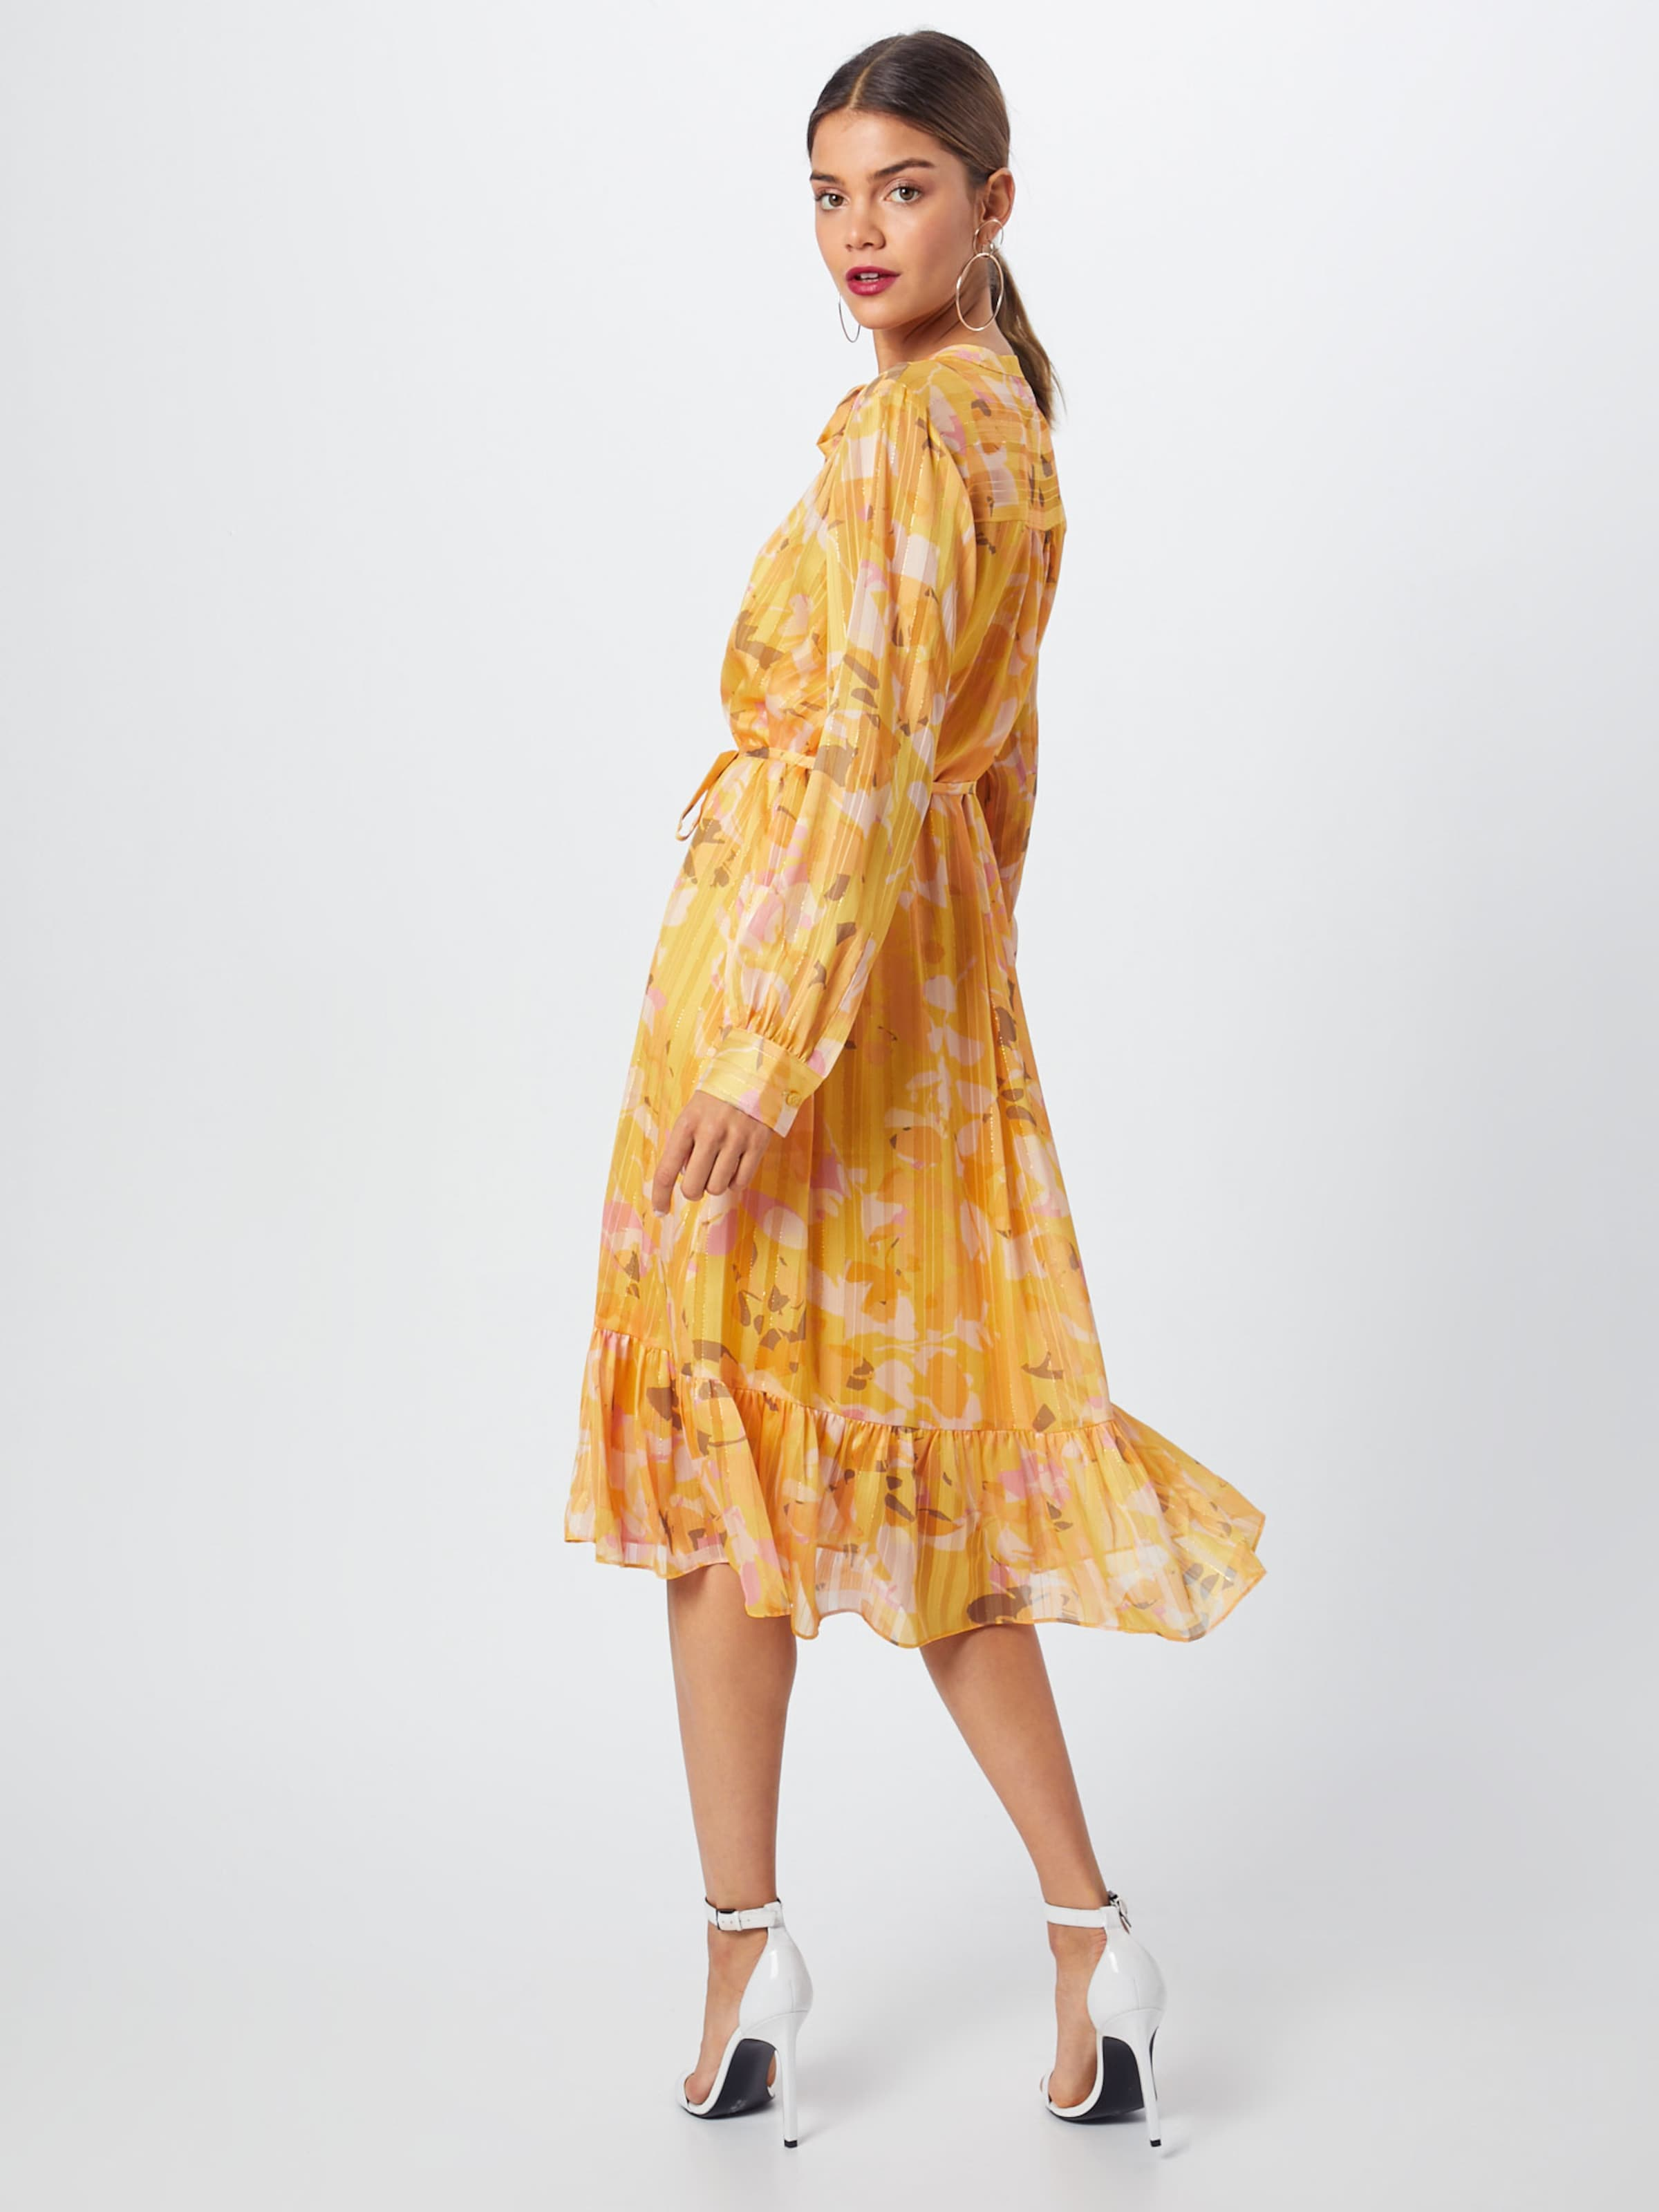 Robe Second En D'été Female Jaune nOPwXN08kZ